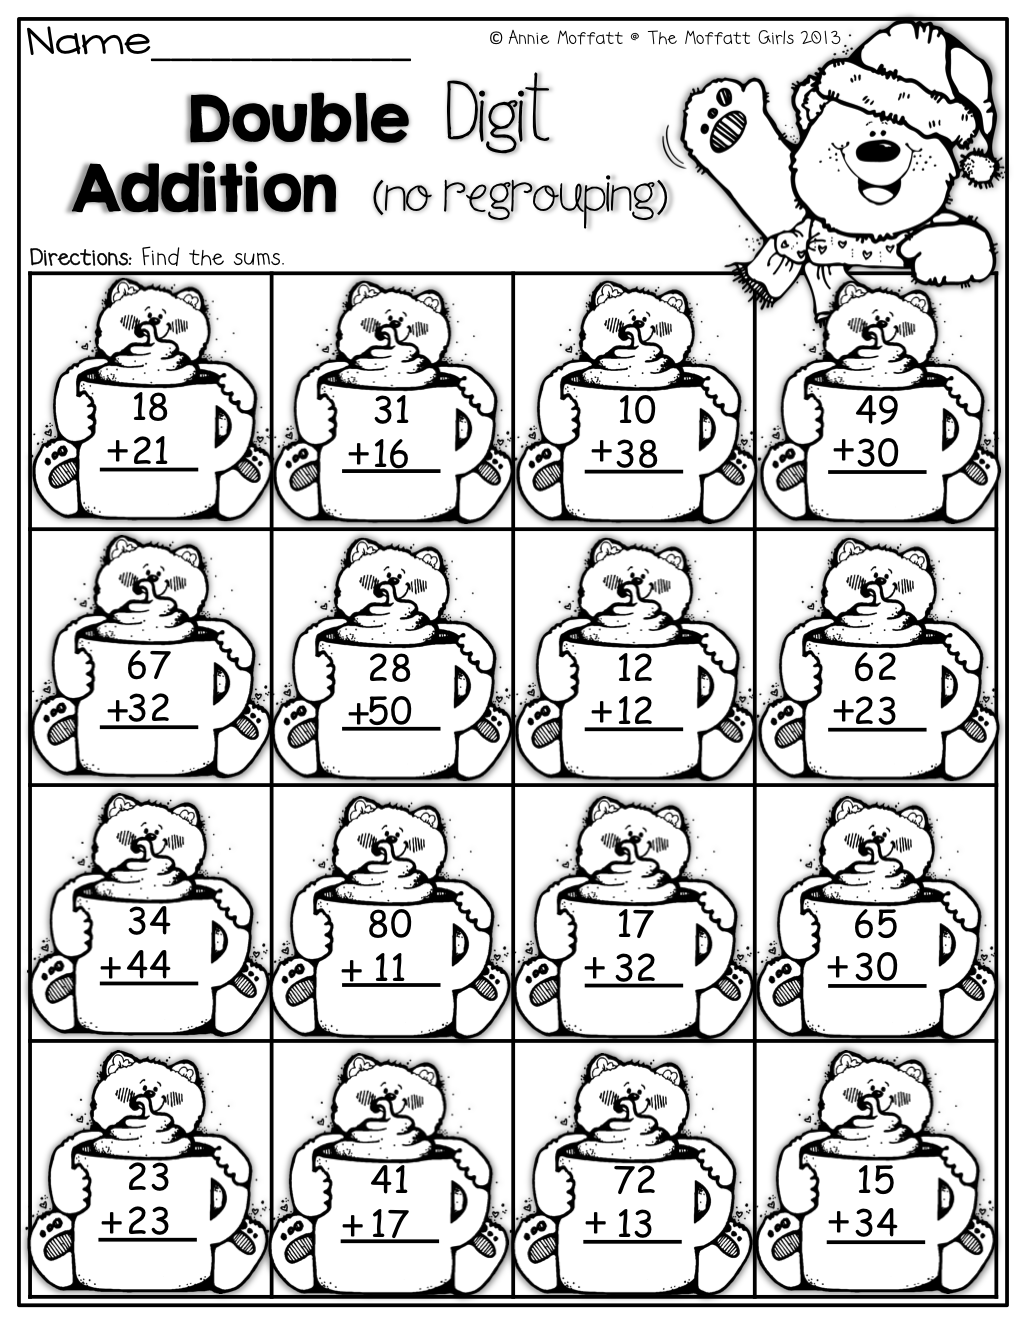 Double Digit Addition with no regrouping! | 1st Grade ...